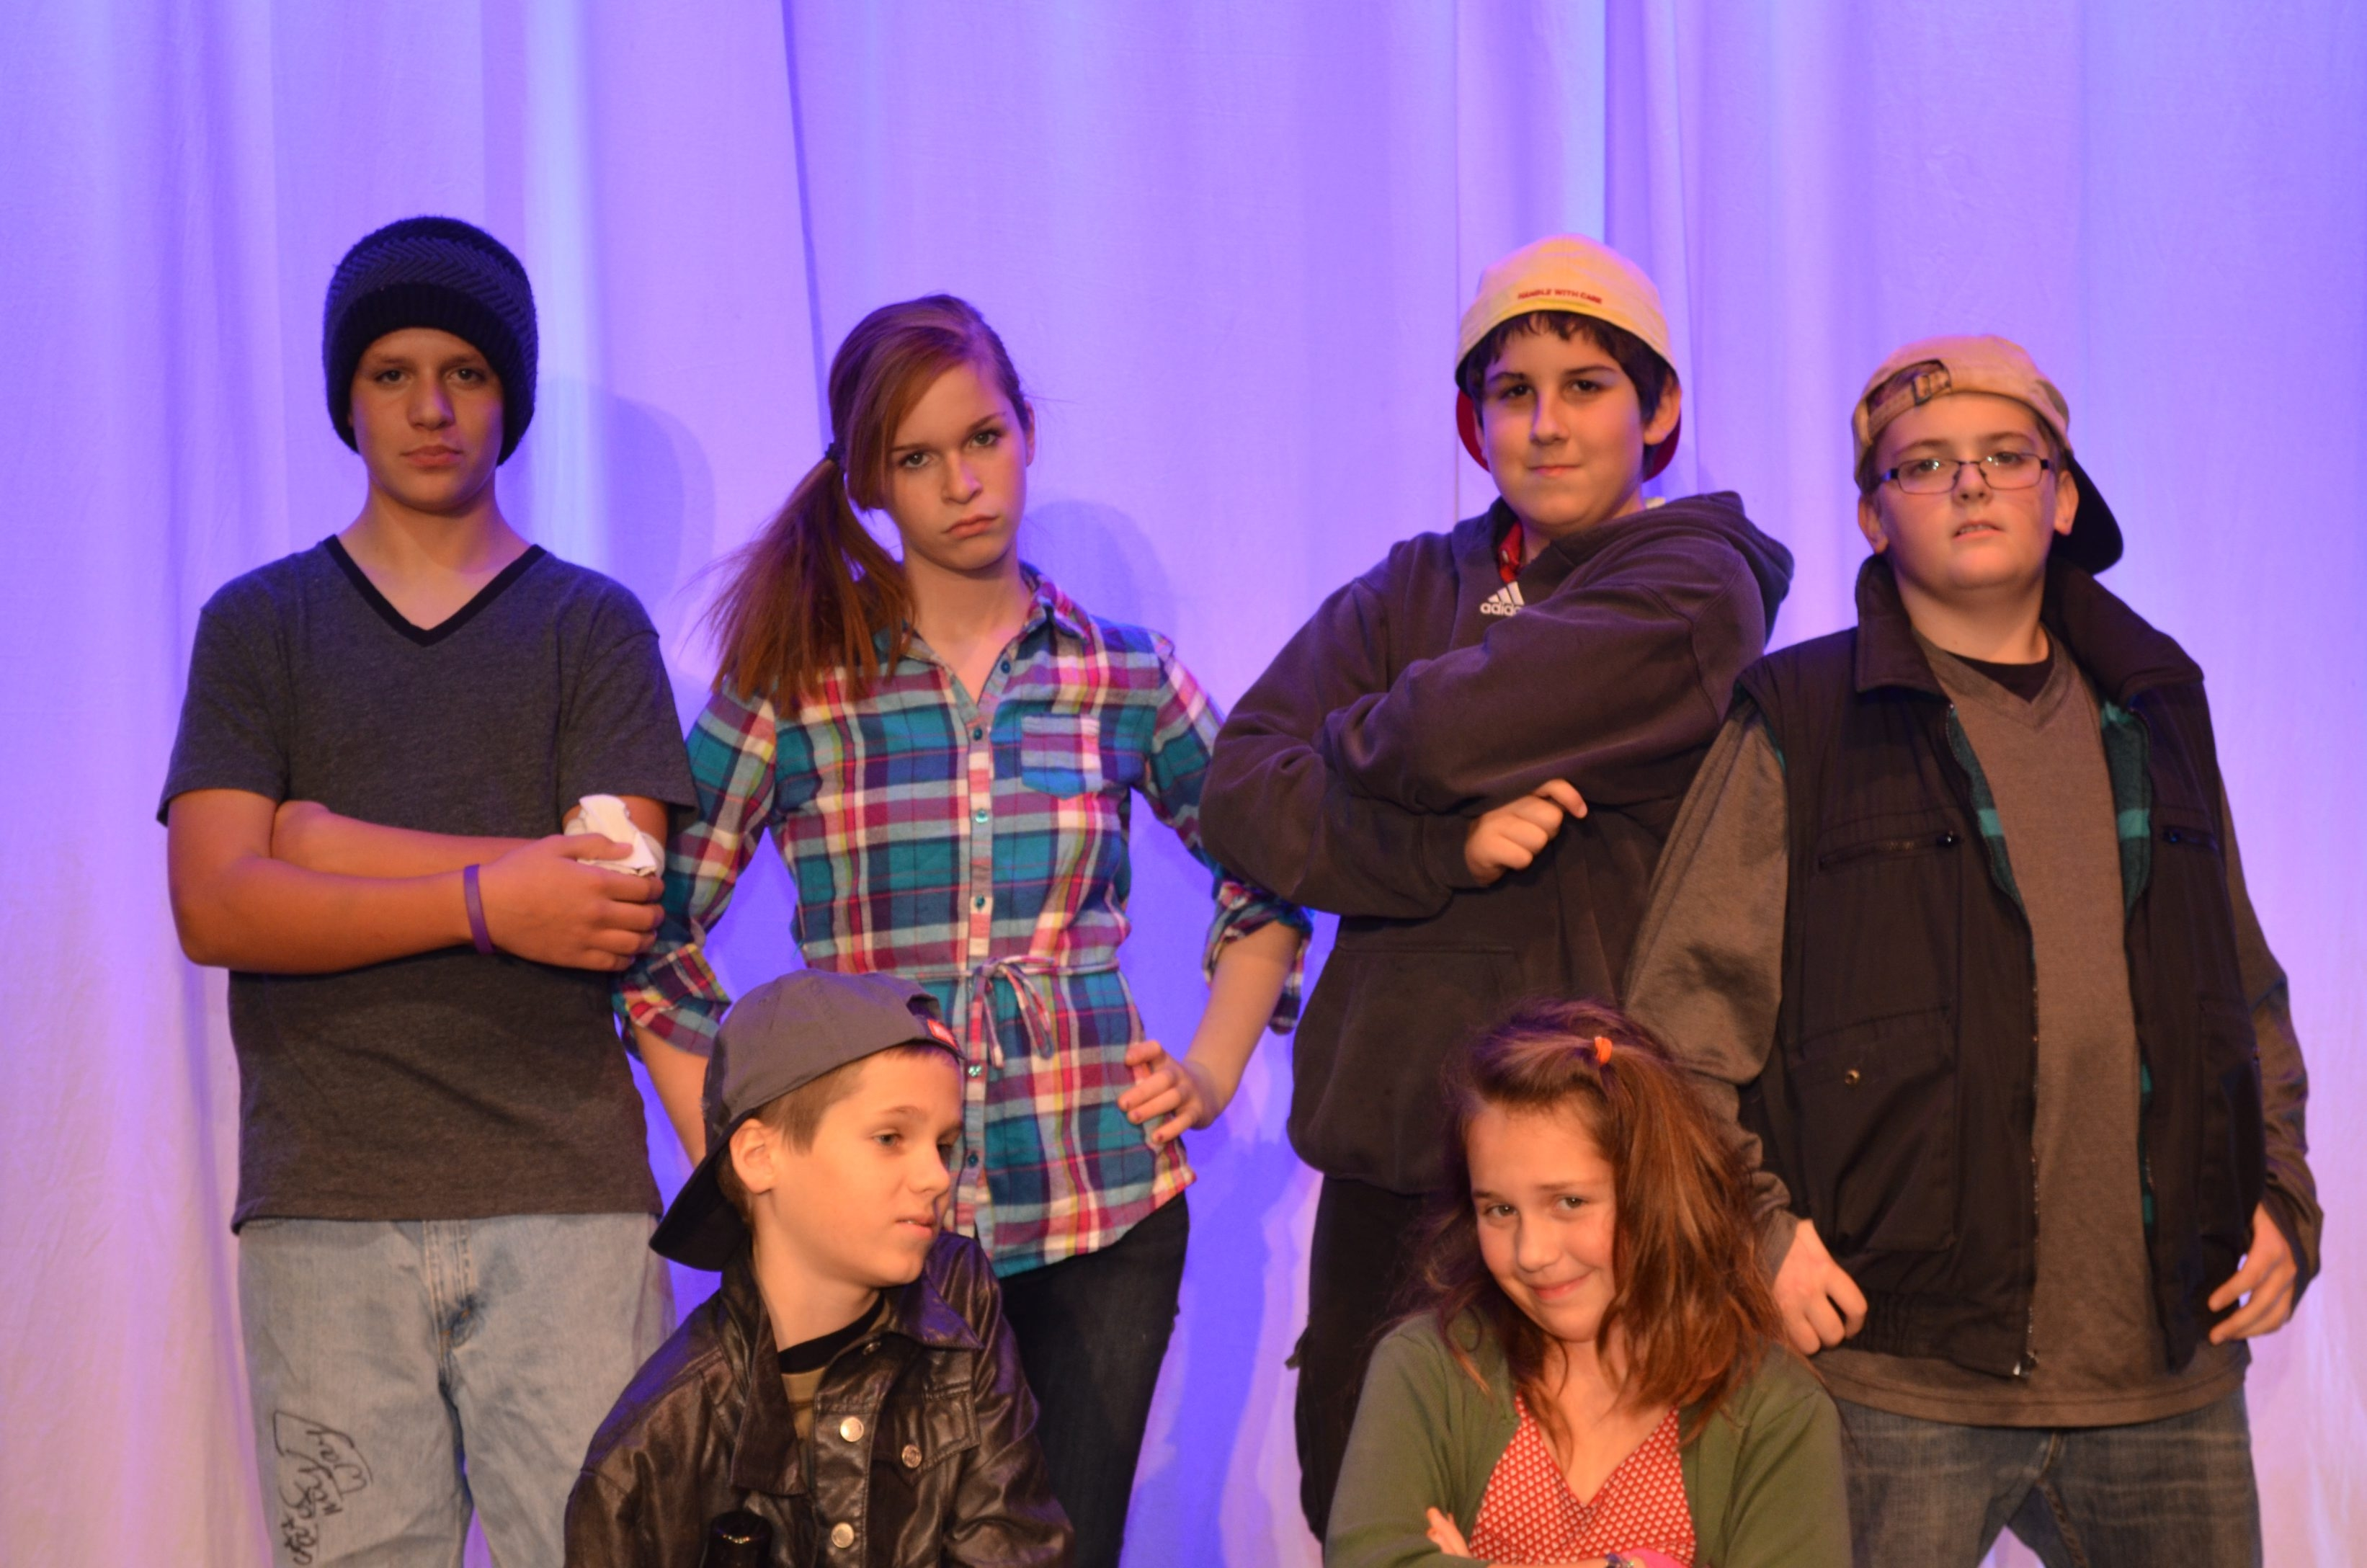 PICTURED IN PHOTO:  BACK ROW (L to R):  Alex Bogart, Allison Gray, Jake Shapiro and Michel Guidie.  FRONT ROW (L to R): Aaron Boos and Annabella Bogart. 'The Best Christmas Pageant Ever' at Lancaster Opera House.